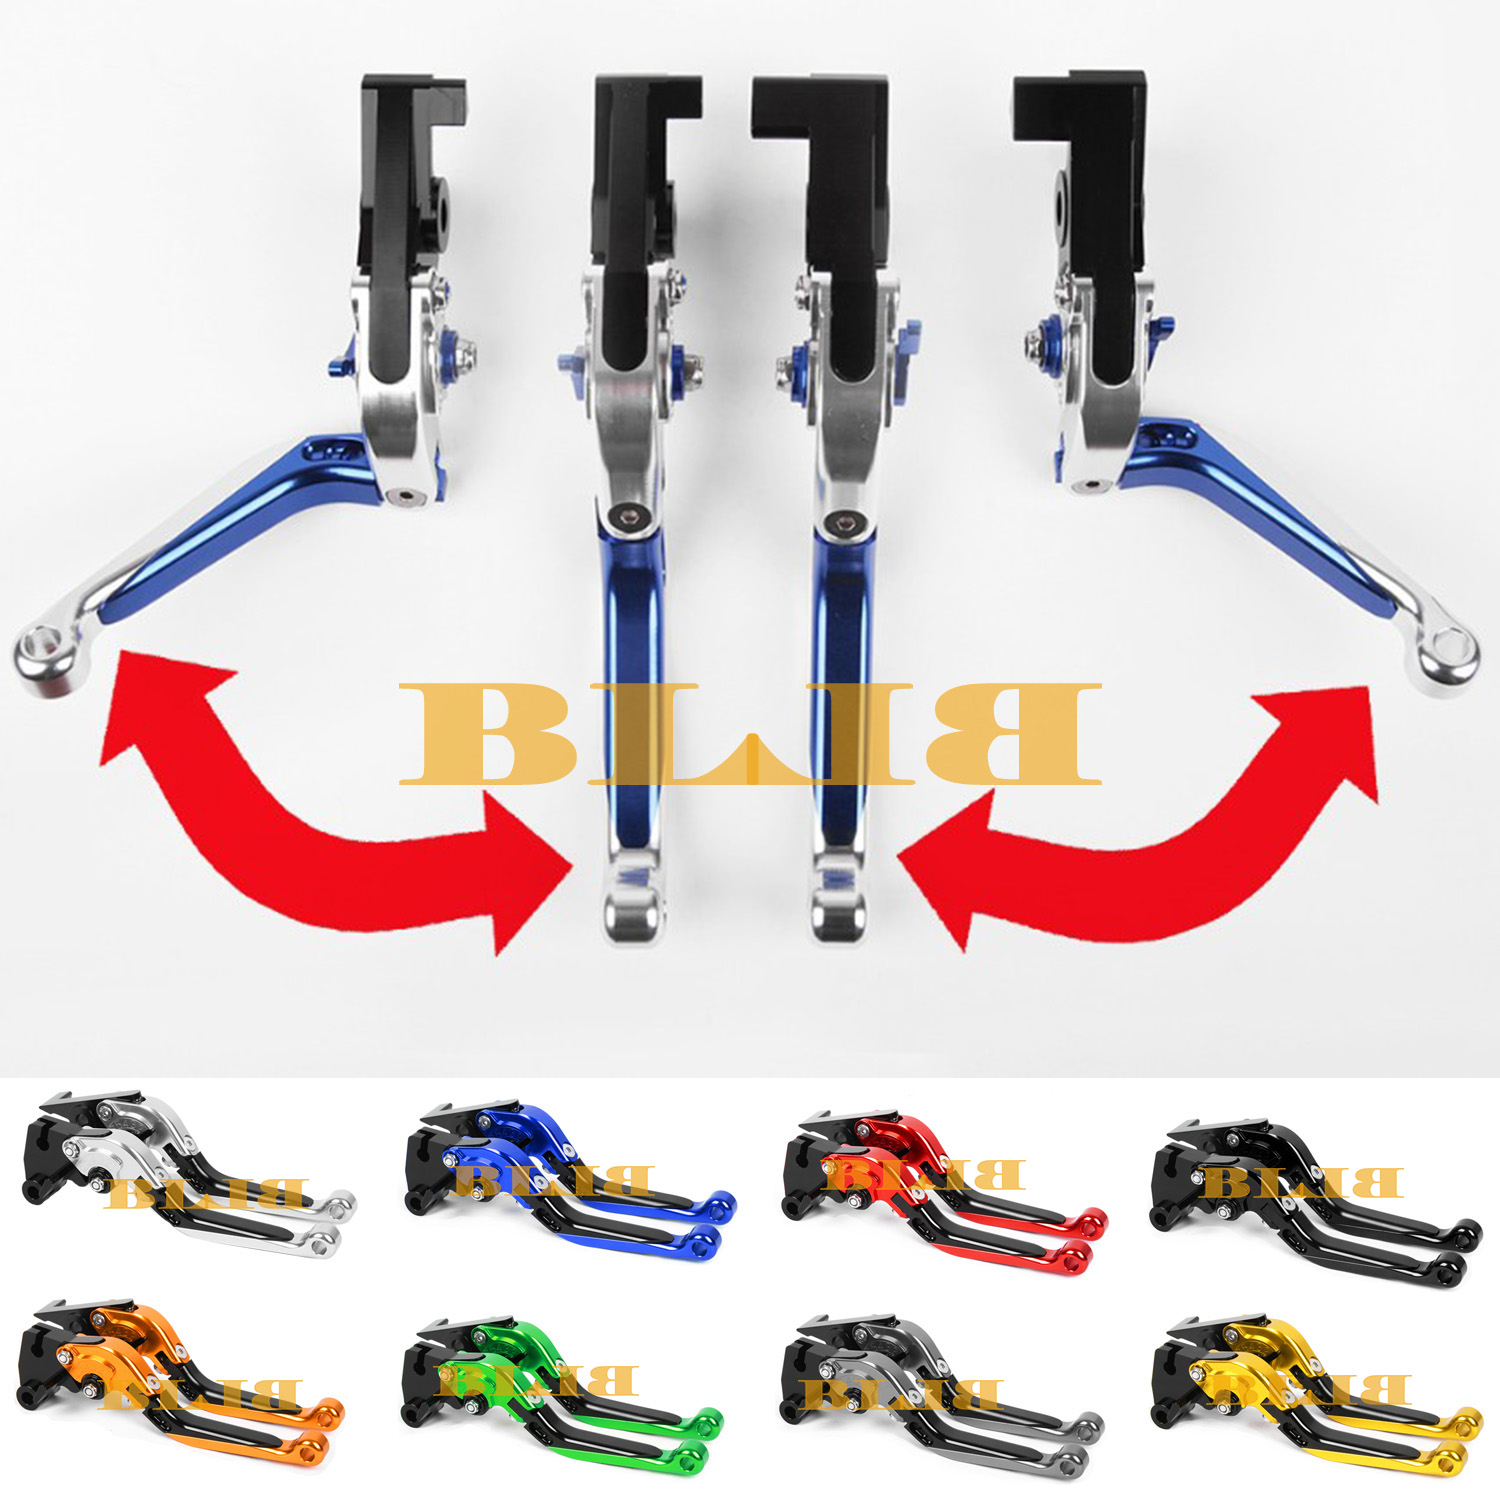 Bajaj Pulsar 200 NS Years Motorcycle Folding&Extending Brake Clutch Lever Hot Motocross Road CNC Levers - BLBL store